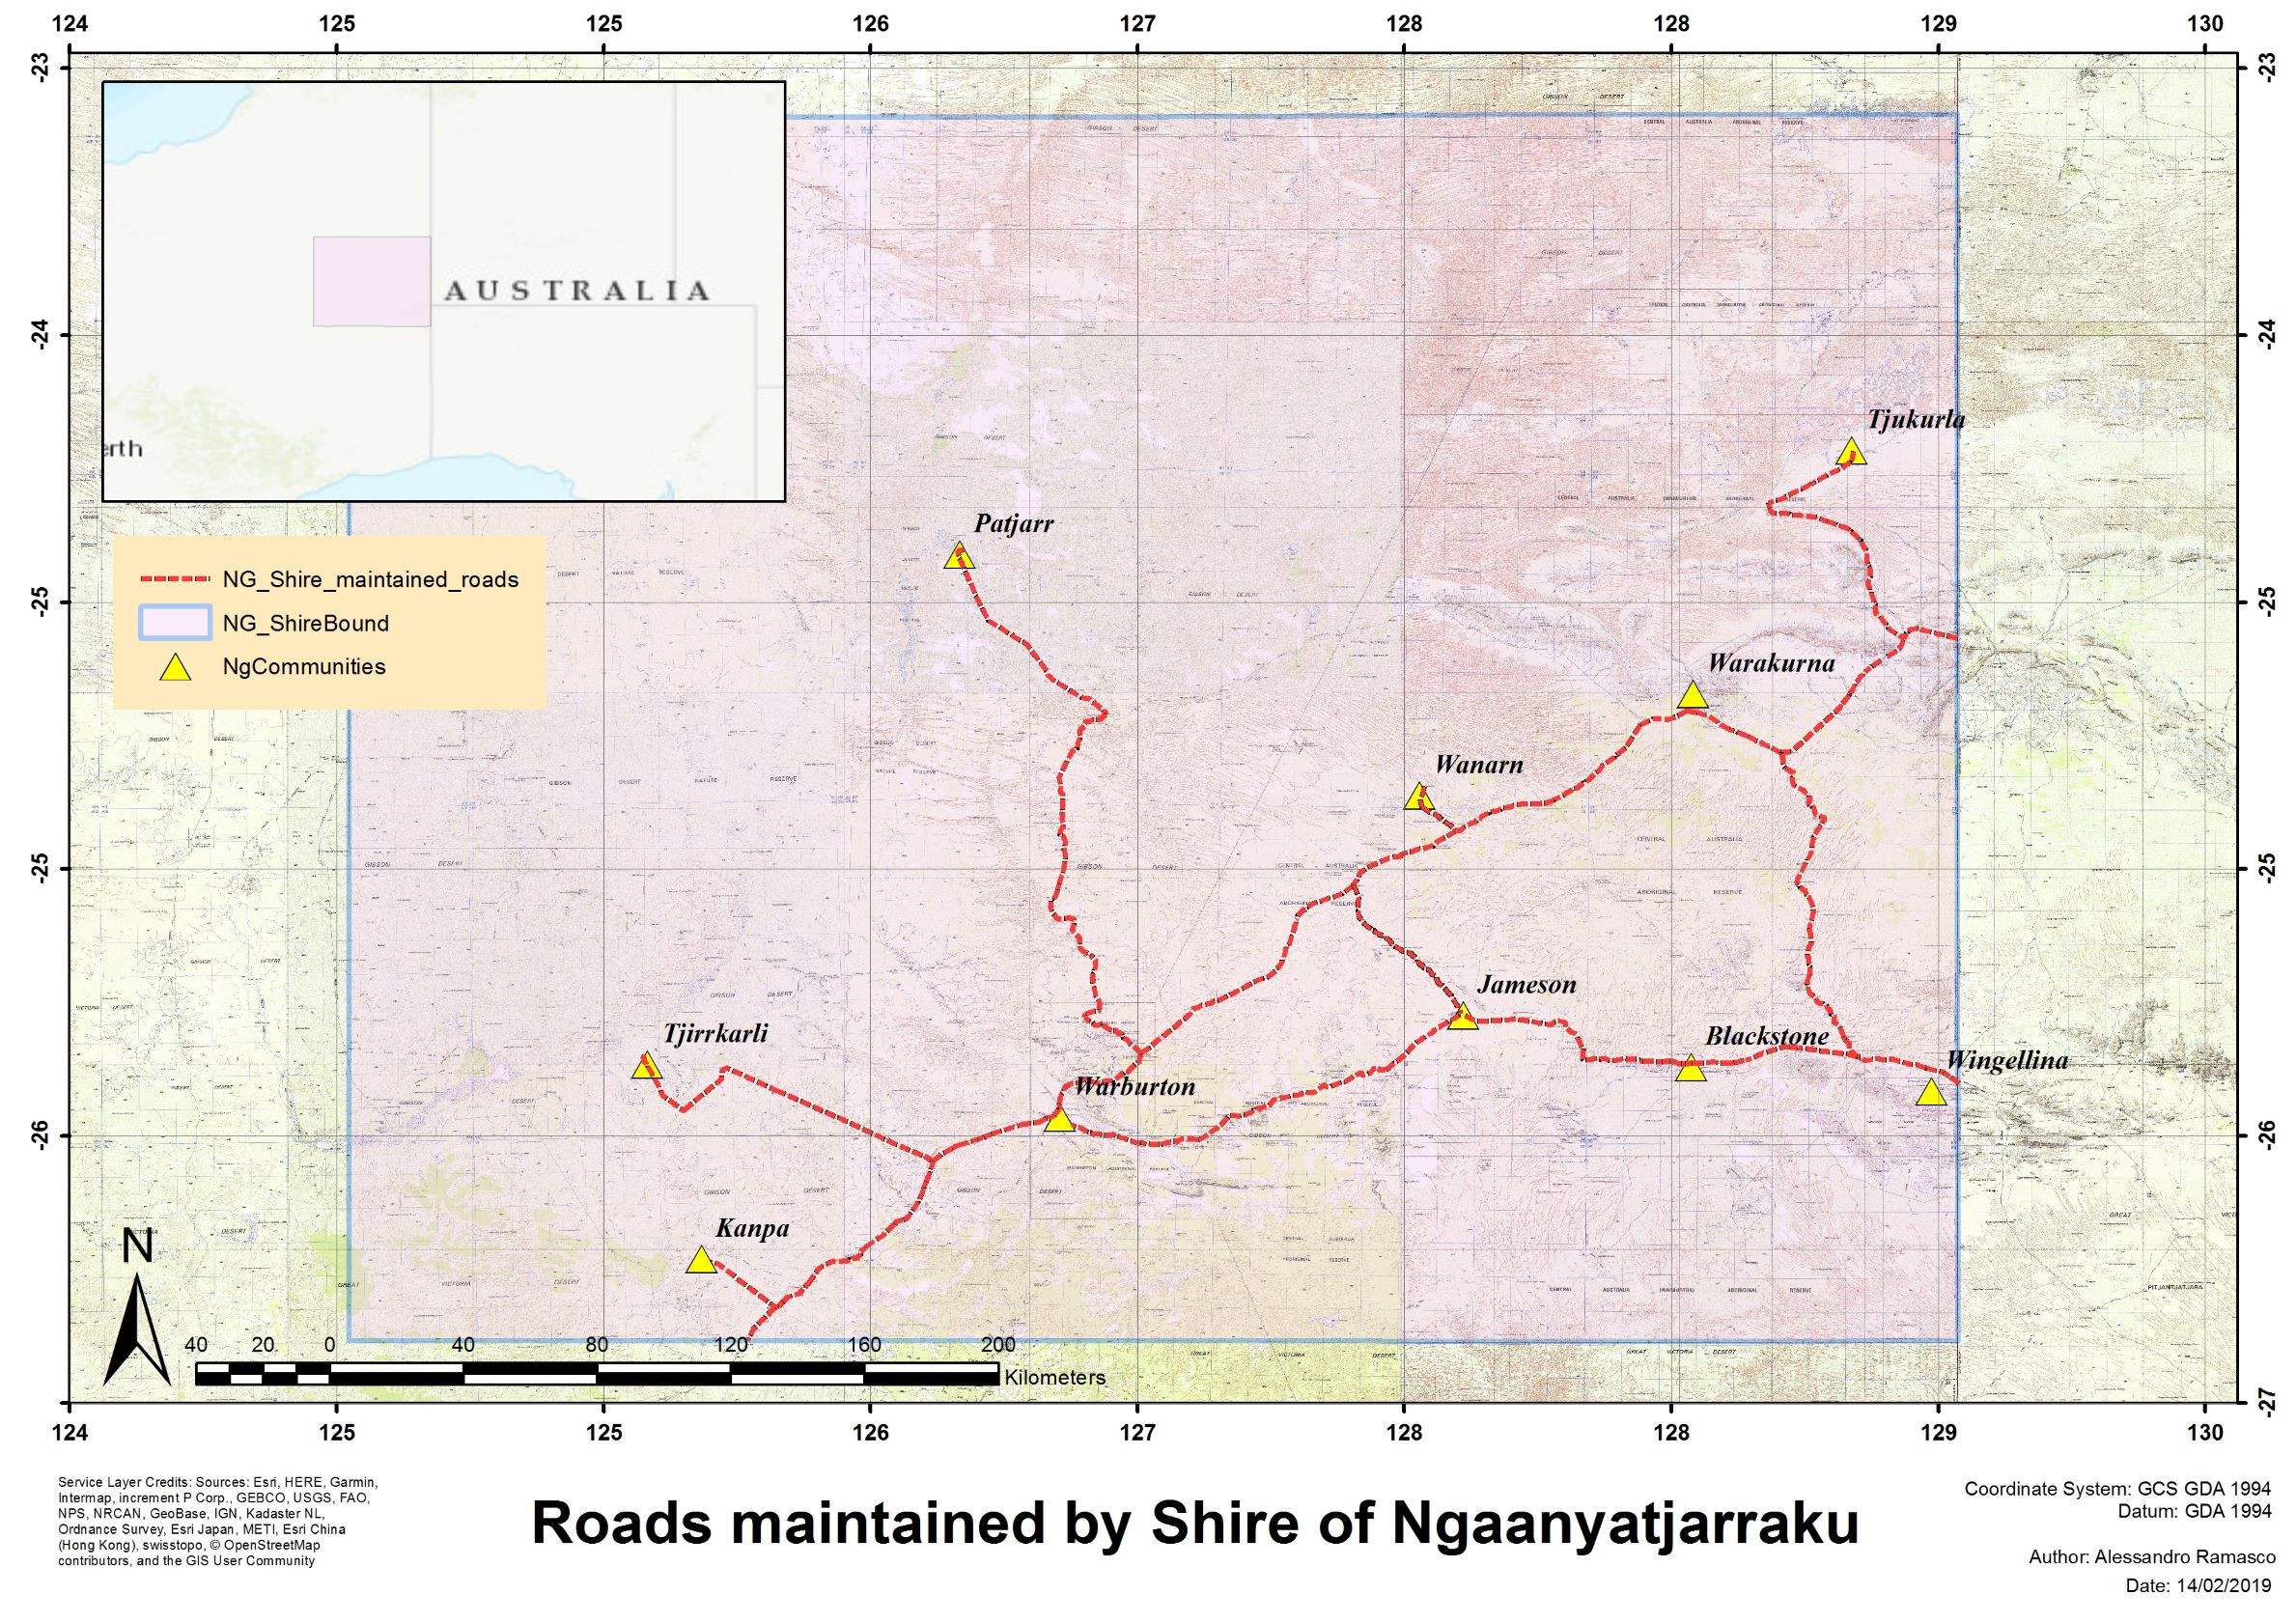 NG shire roads reduced